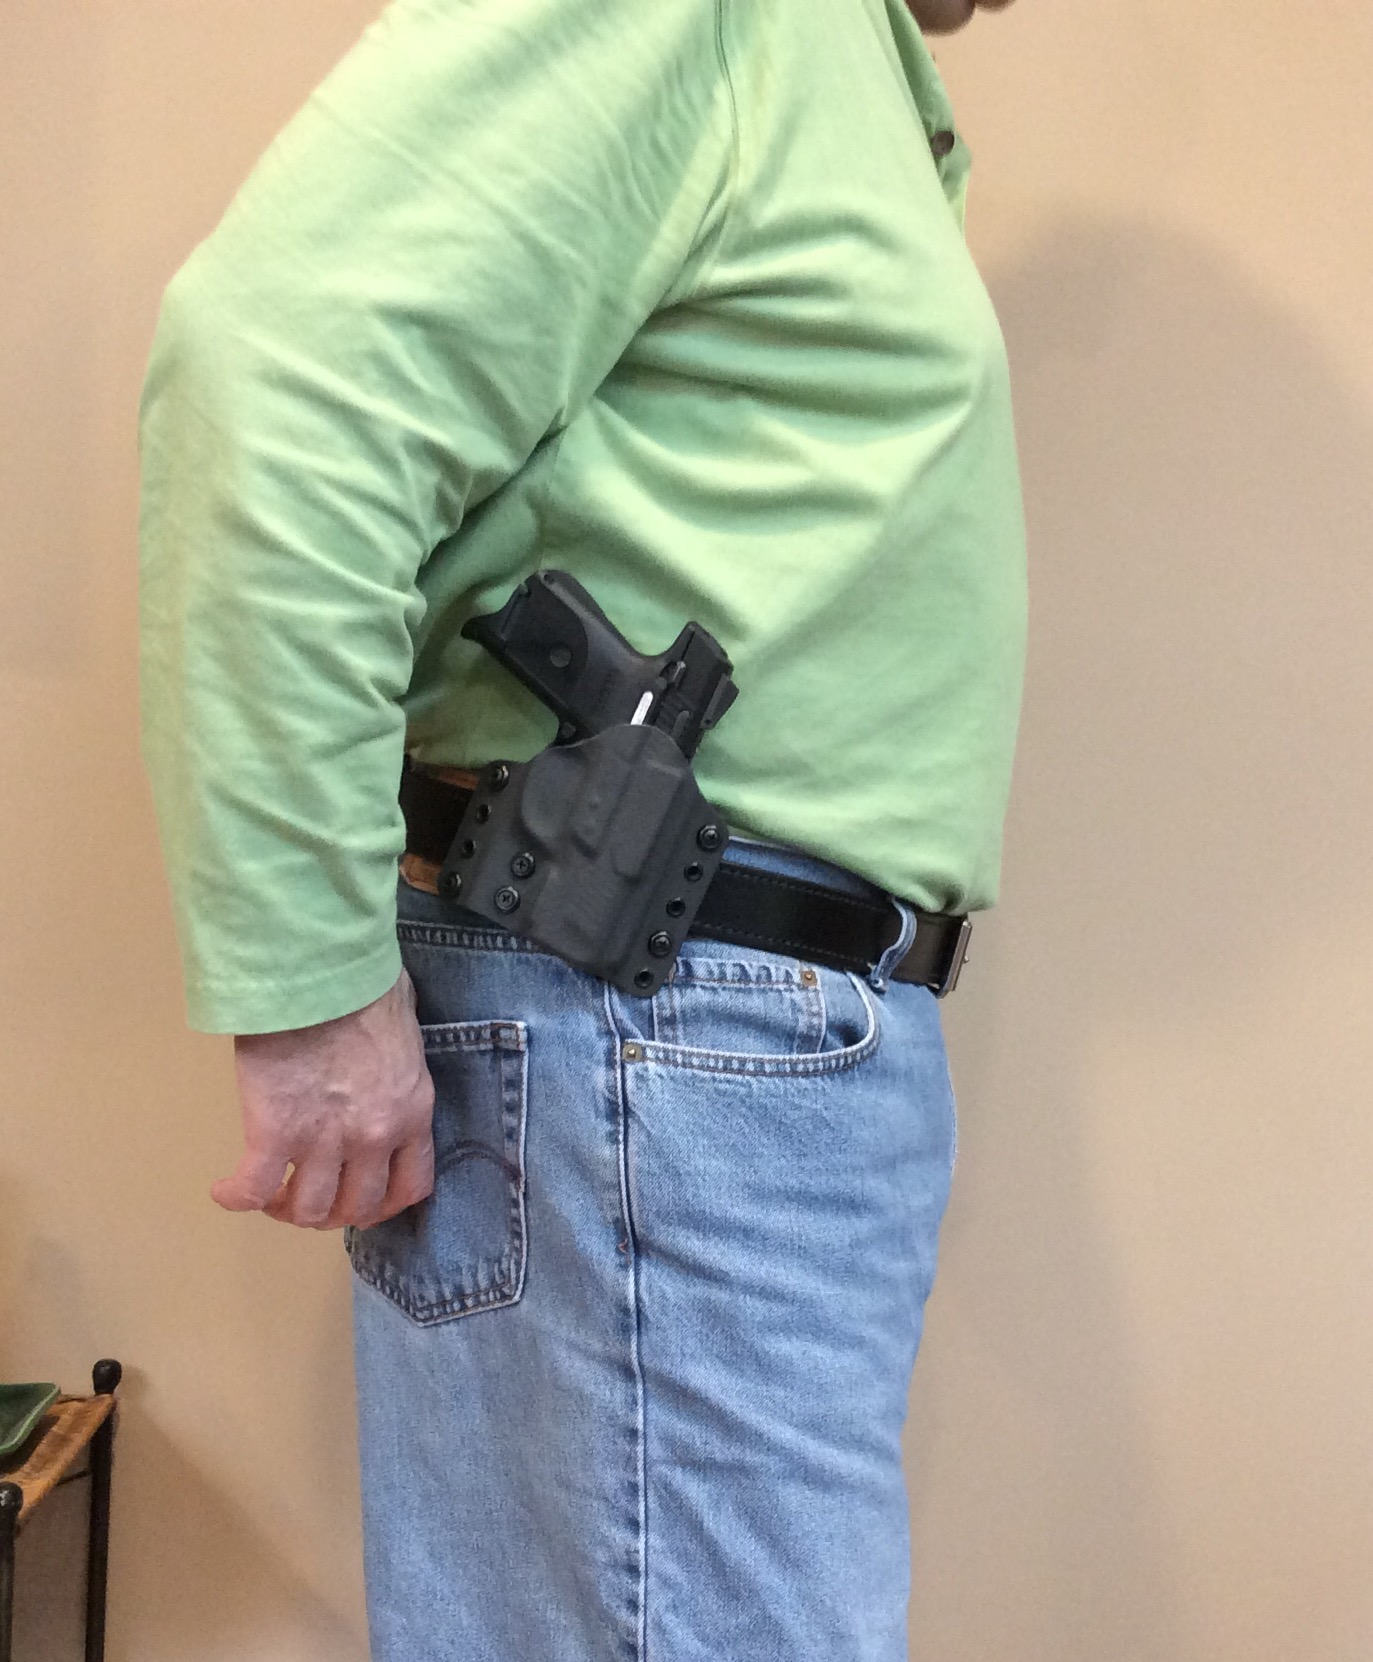 Lenwood Belt & Wraith Holster Review and Giveaway - Hank's